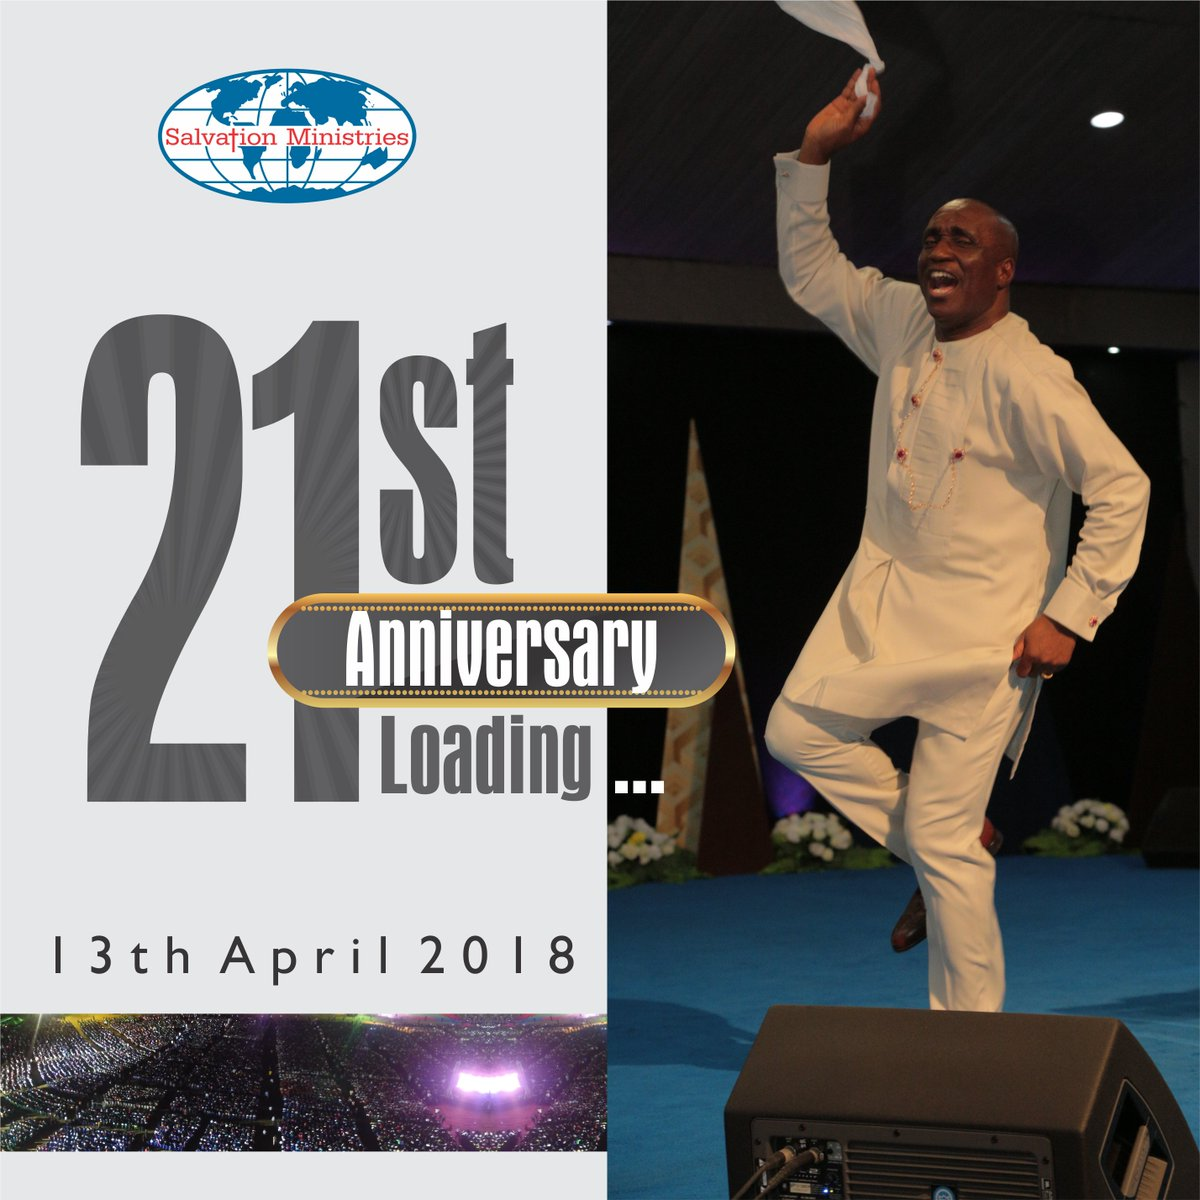 Hallelujah! OUR 21ST ANNIVERSARY IS DRAWING CLOSER! Salvation Ministries started on the 13th of April 1997 at plot 35 Birabi Street GRA 1 PHC, with 34 members, but today, God has done more than we can say! Join us to celebrate our 21st Anniversary on April 13th, 2018